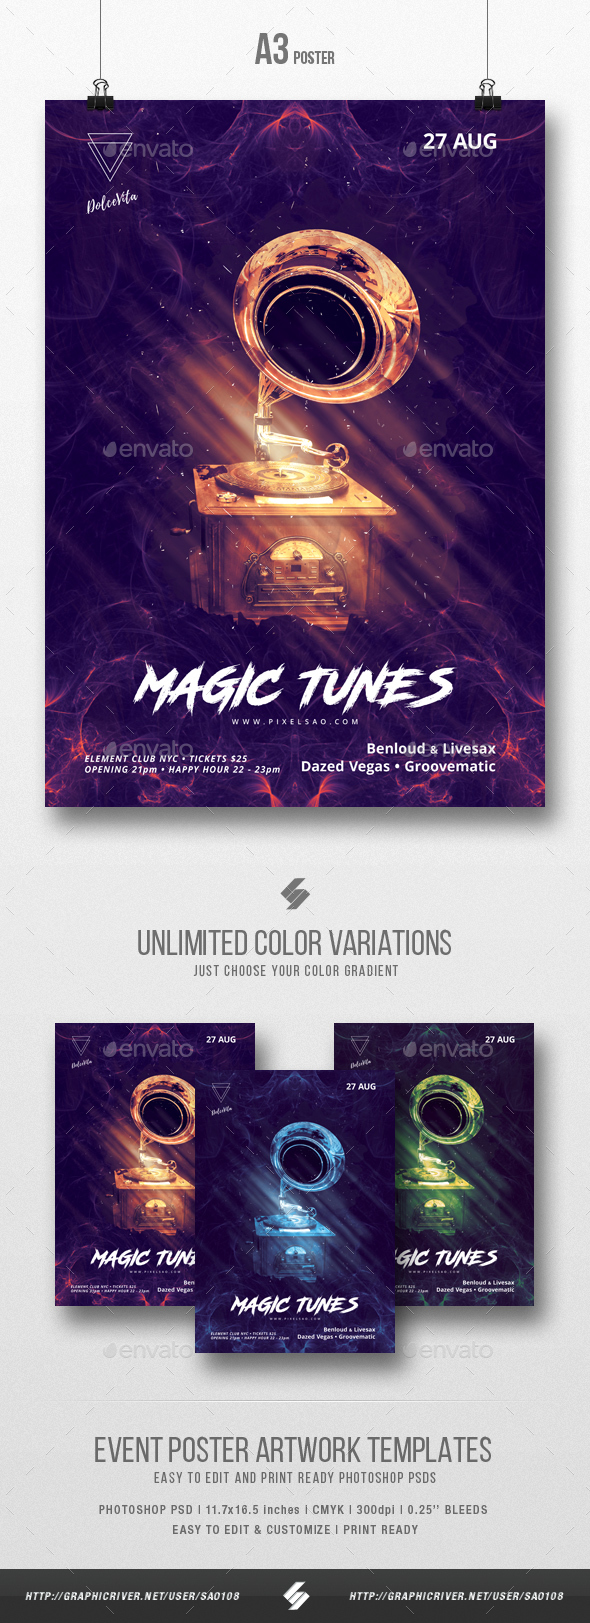 Magic Tunes - Party Flyer / Poster Artwork Template A3 - Clubs & Parties Events